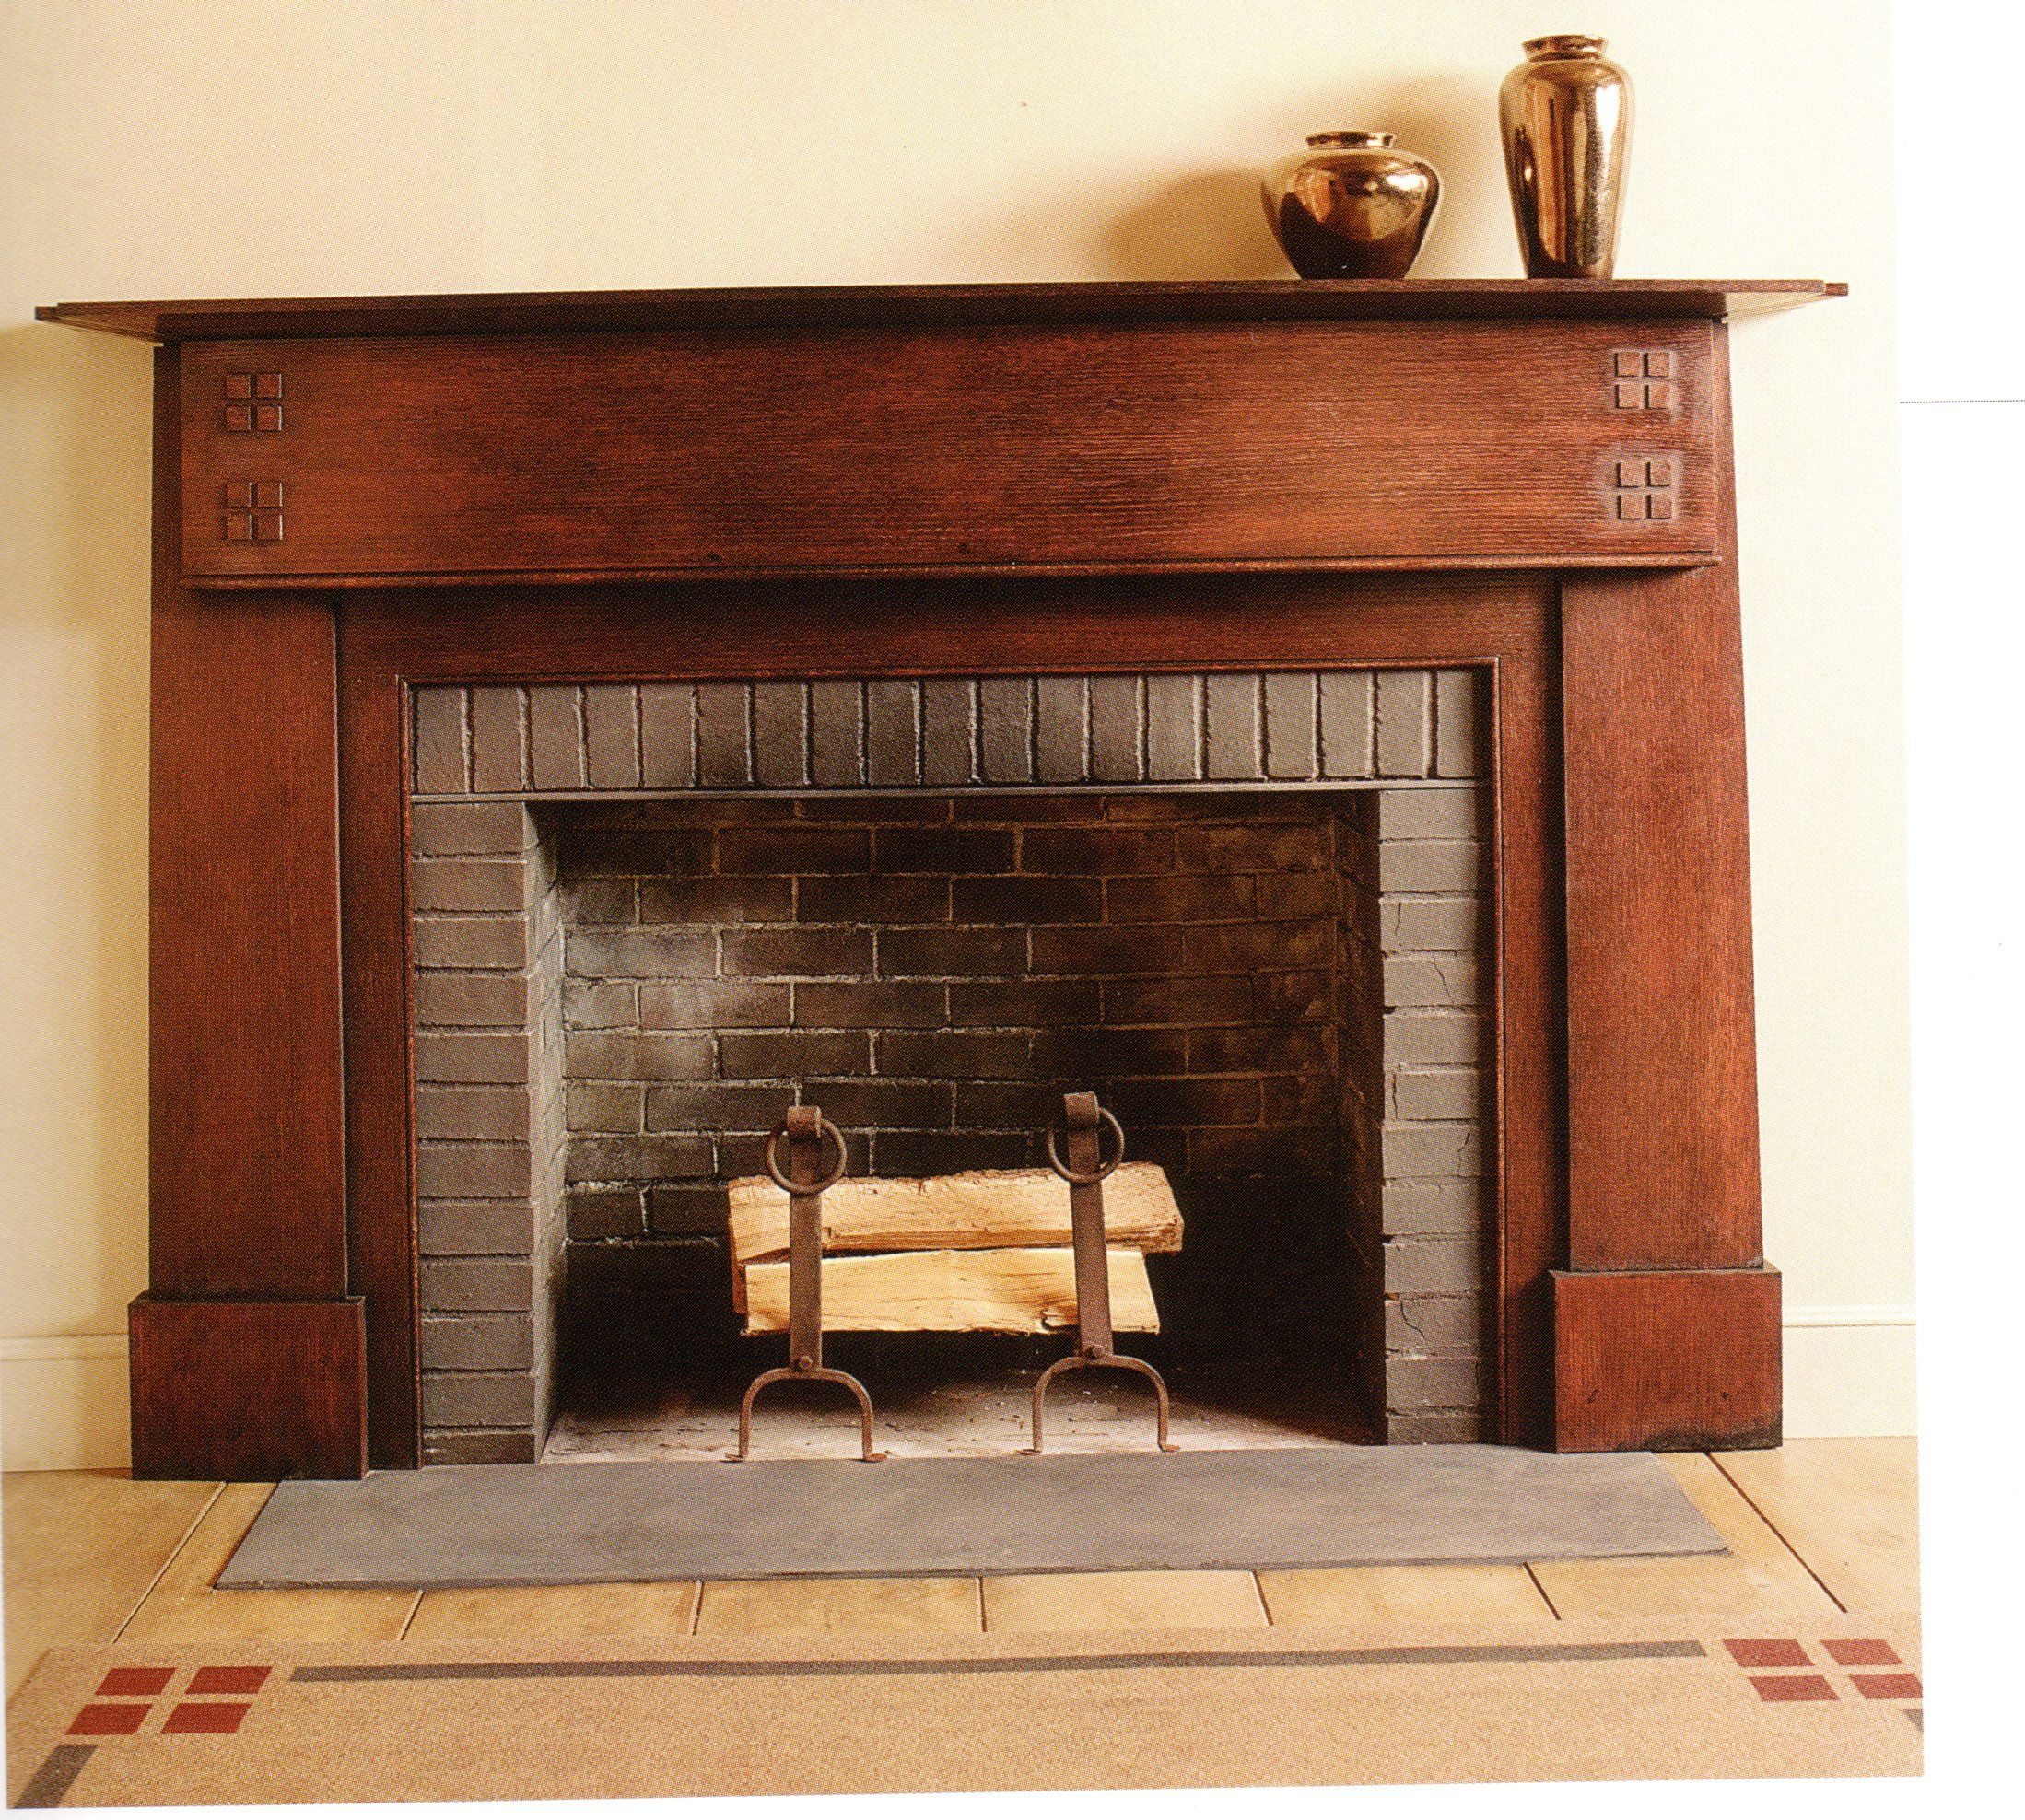 Surprising Custom Craftsman Style Mantel Your Mantel Could Look Like Home Interior And Landscaping Mentranervesignezvosmurscom